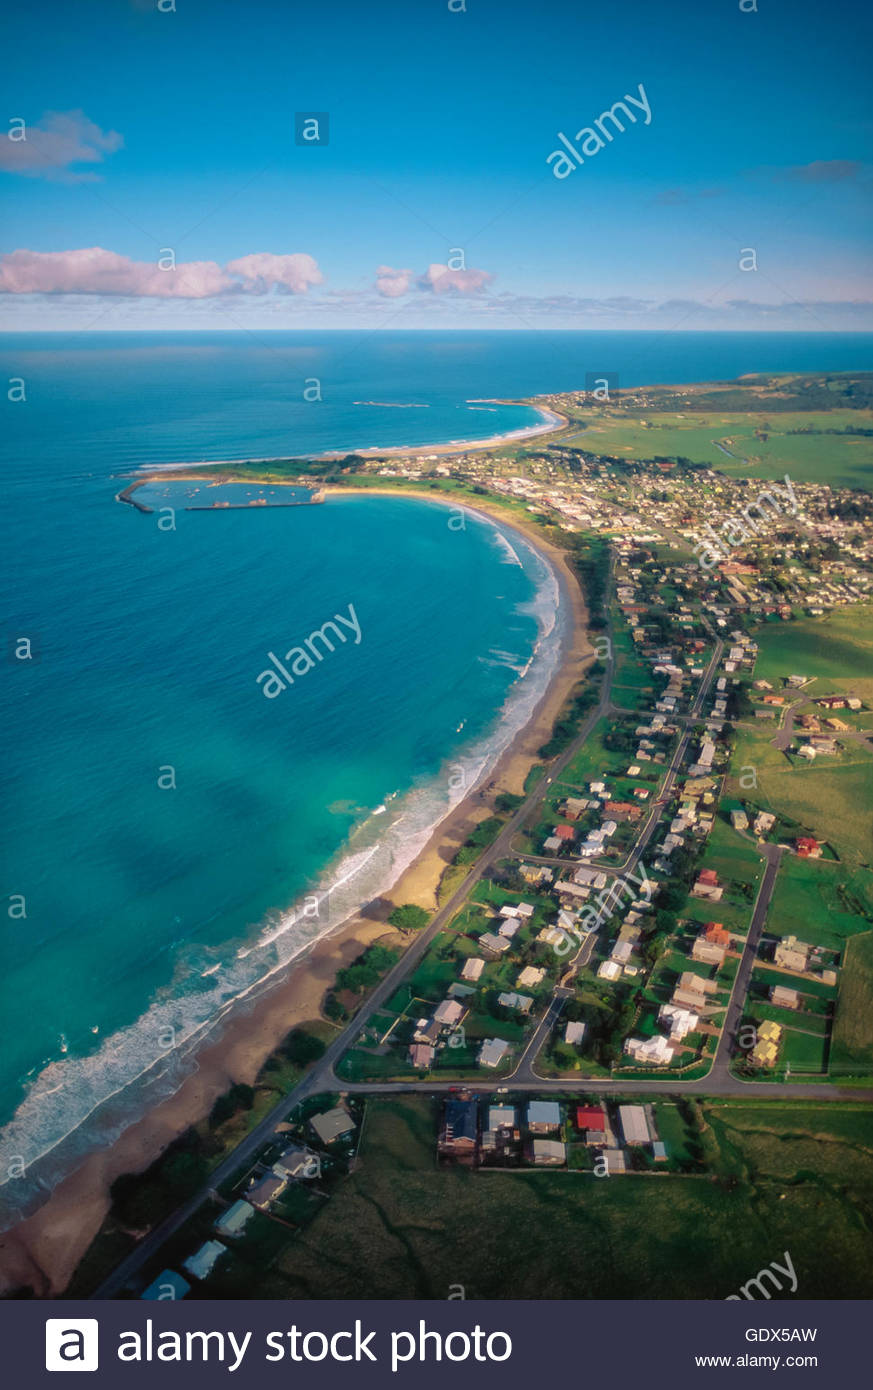 Aerial view of Apollo Bay, Great Ocean Road, Victoria, Australia, looking south-west. - Stock Image